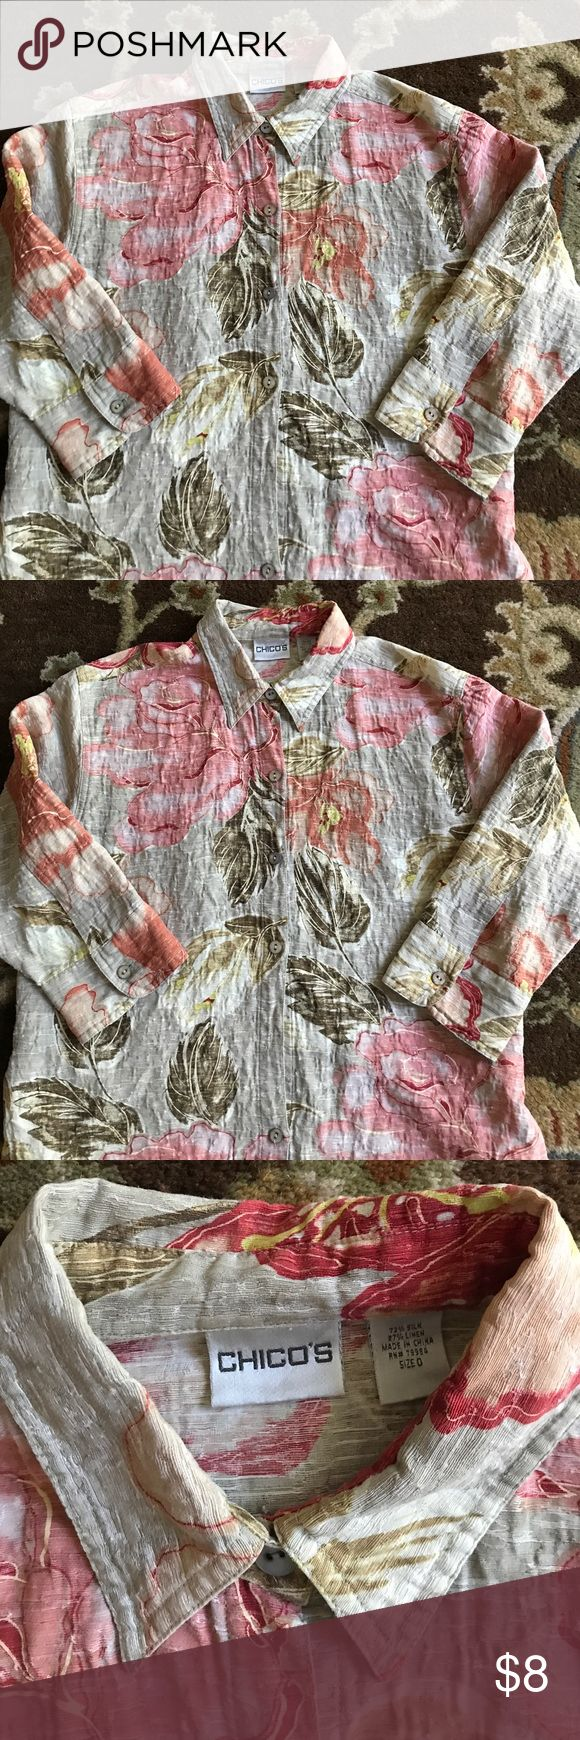 Chicos buttoned down shirt size 0 Hawaiian style buttoned down shirt. 3/4 sleeved collared. Missing a button. Size 0 but fits more like a medium Chico's Tops Button Down Shirts